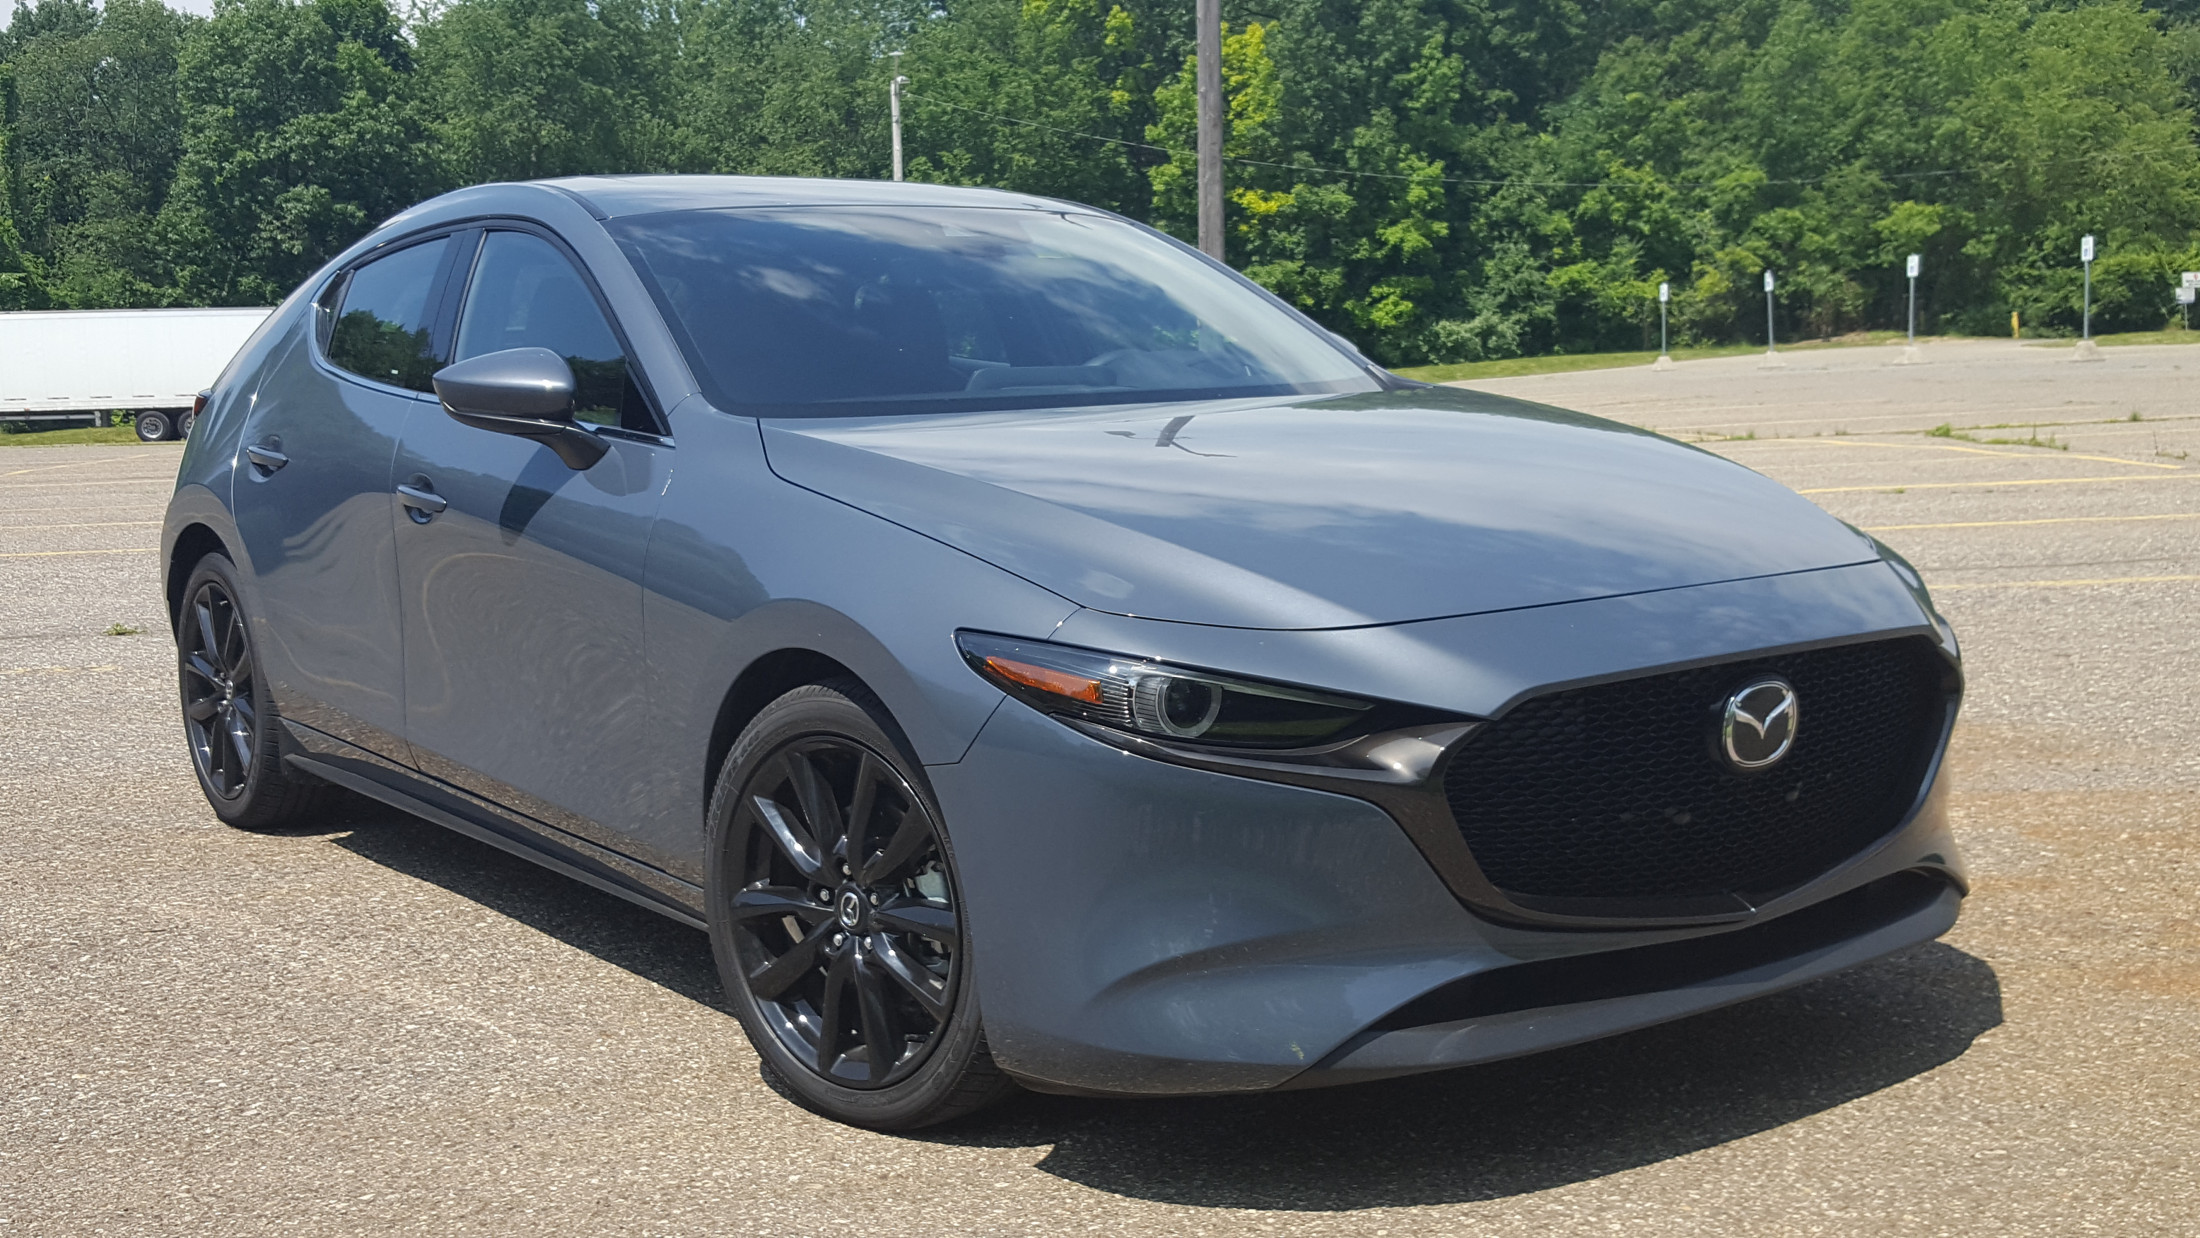 road test review  2019 mazda3 hatchback awd carl